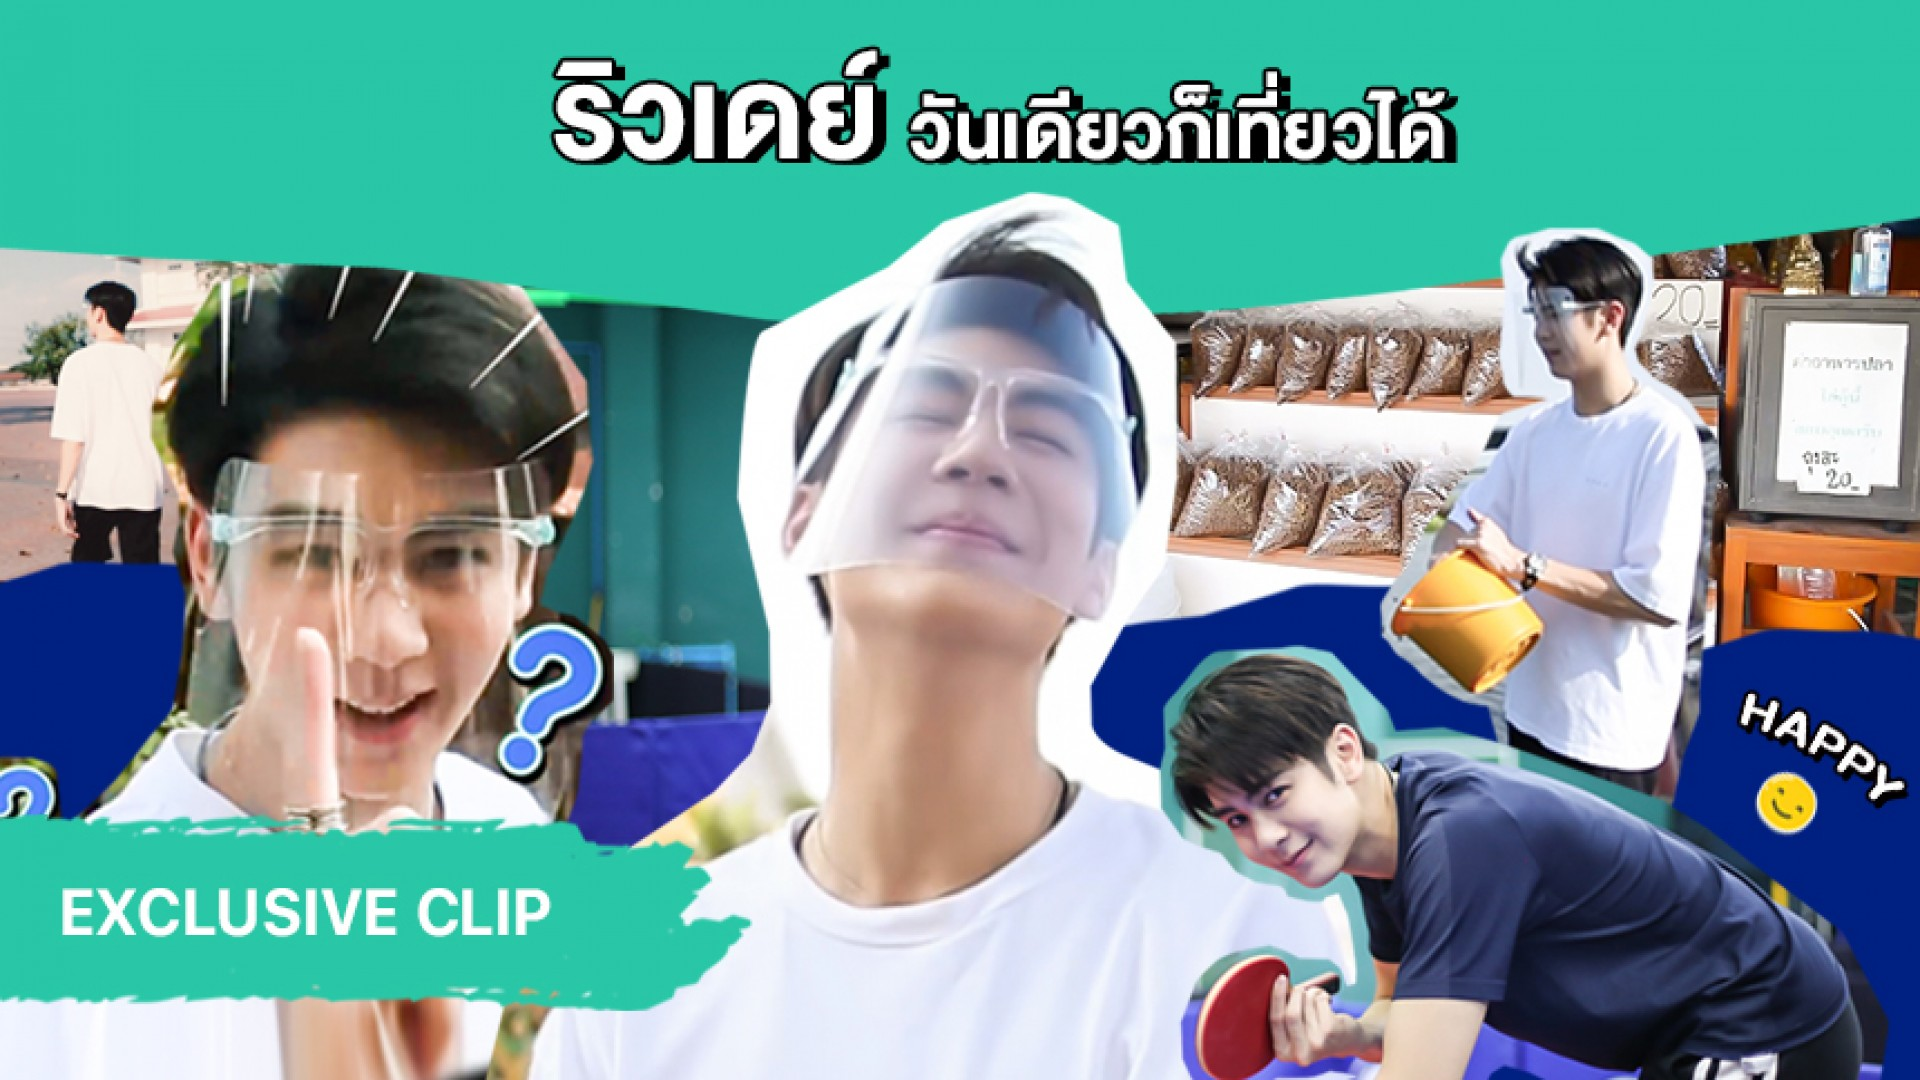 Exclusive clip by ริว วชิรวิชญ์